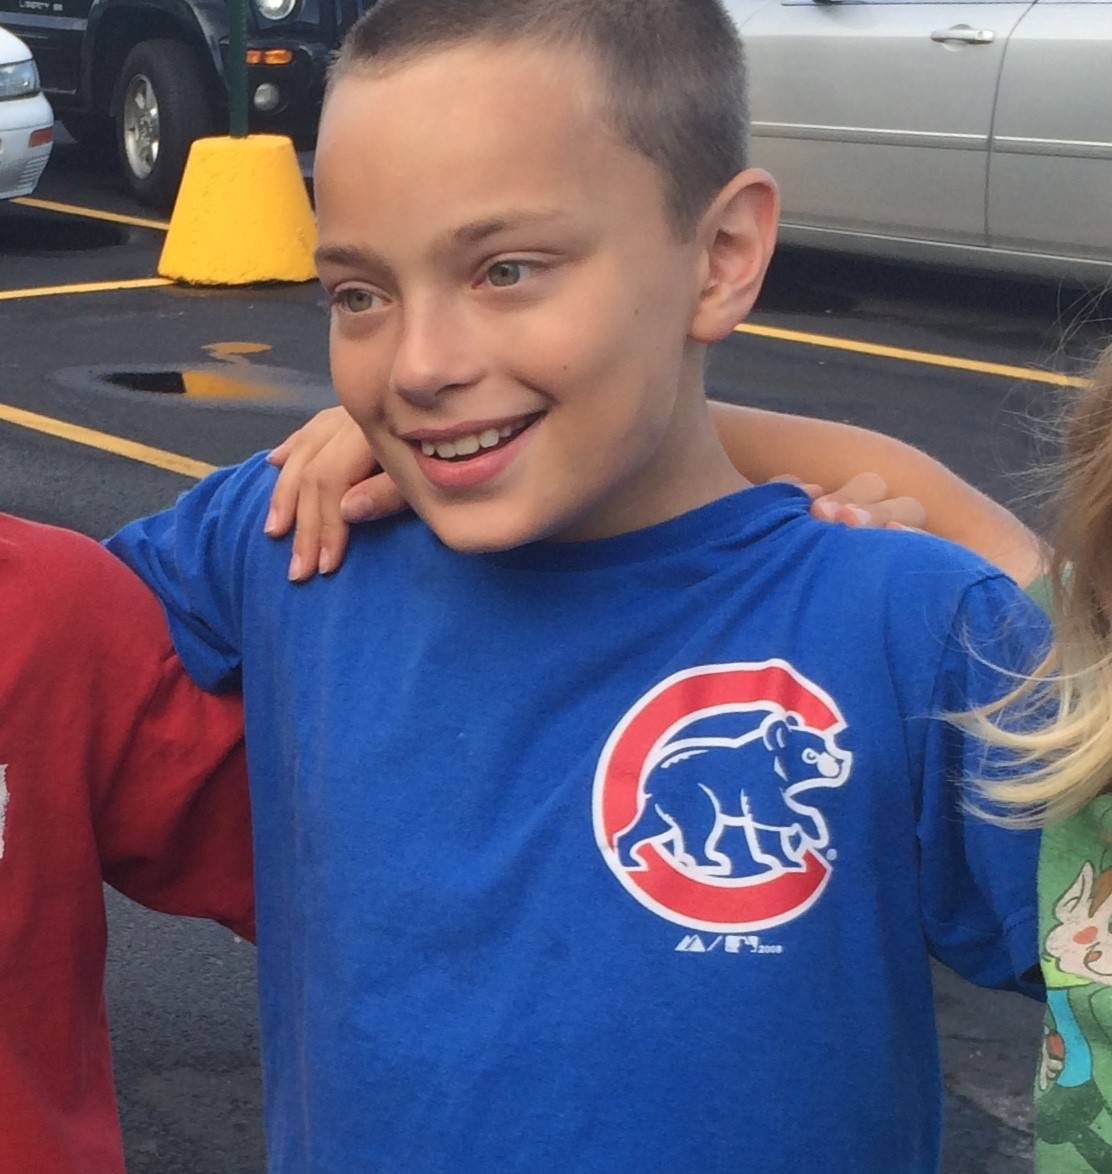 Josh Berendt, 11, of Palatine will be the Honored Hero at the Take Steps for Crohn's and Colitis Walk in Naperville on May 31.